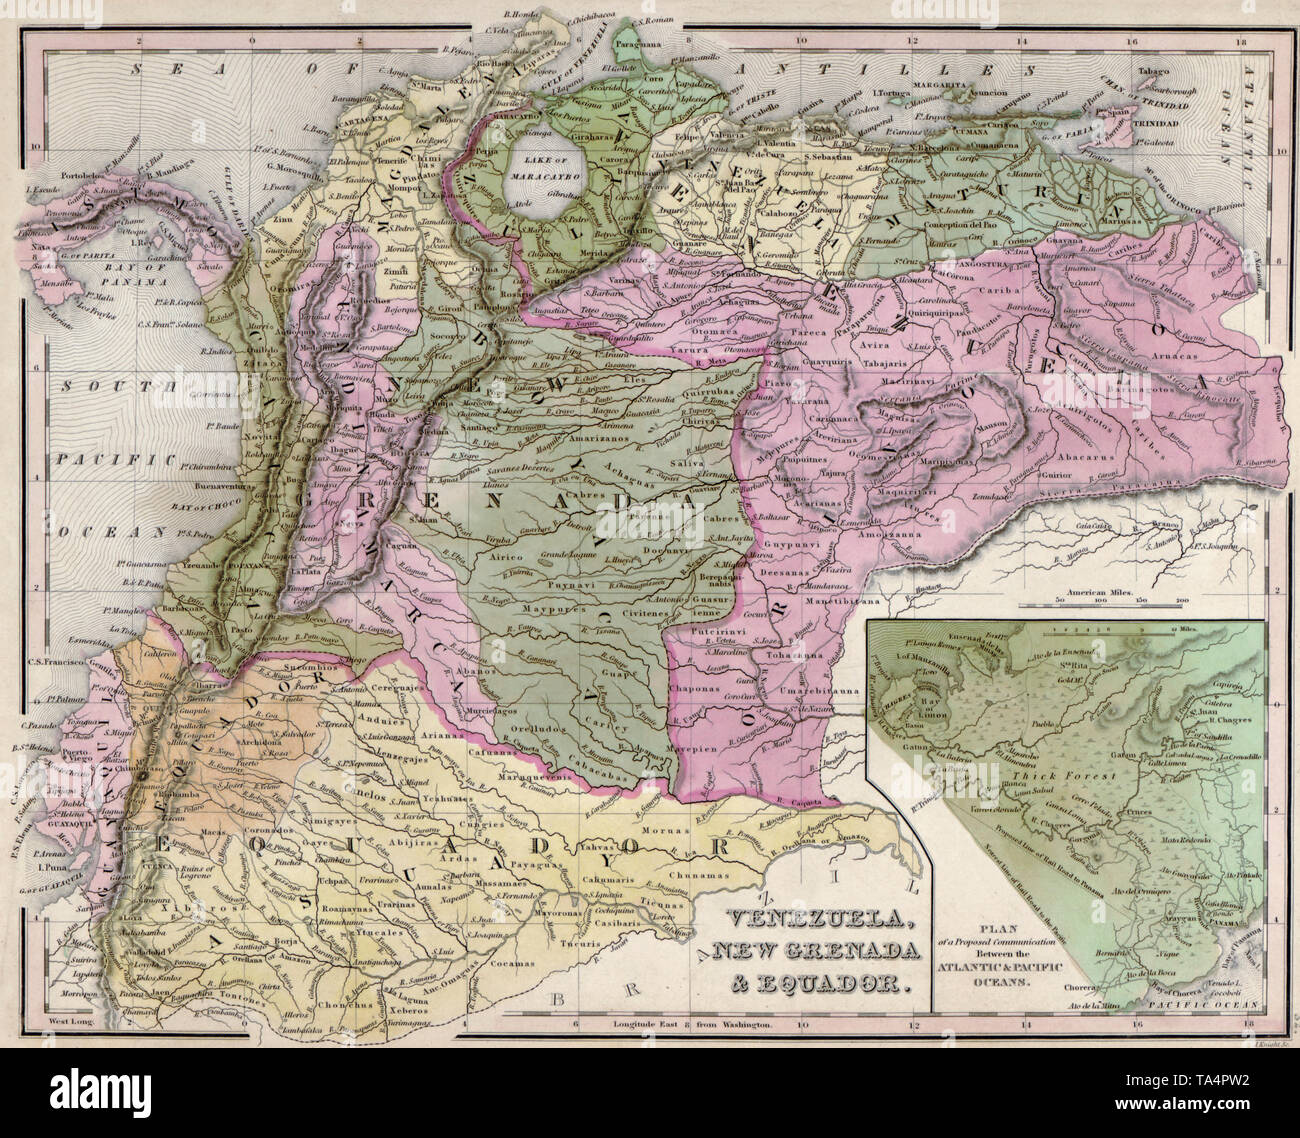 Map of Venezuela, New Granada, and Ecuador, 1844 Stock Photo